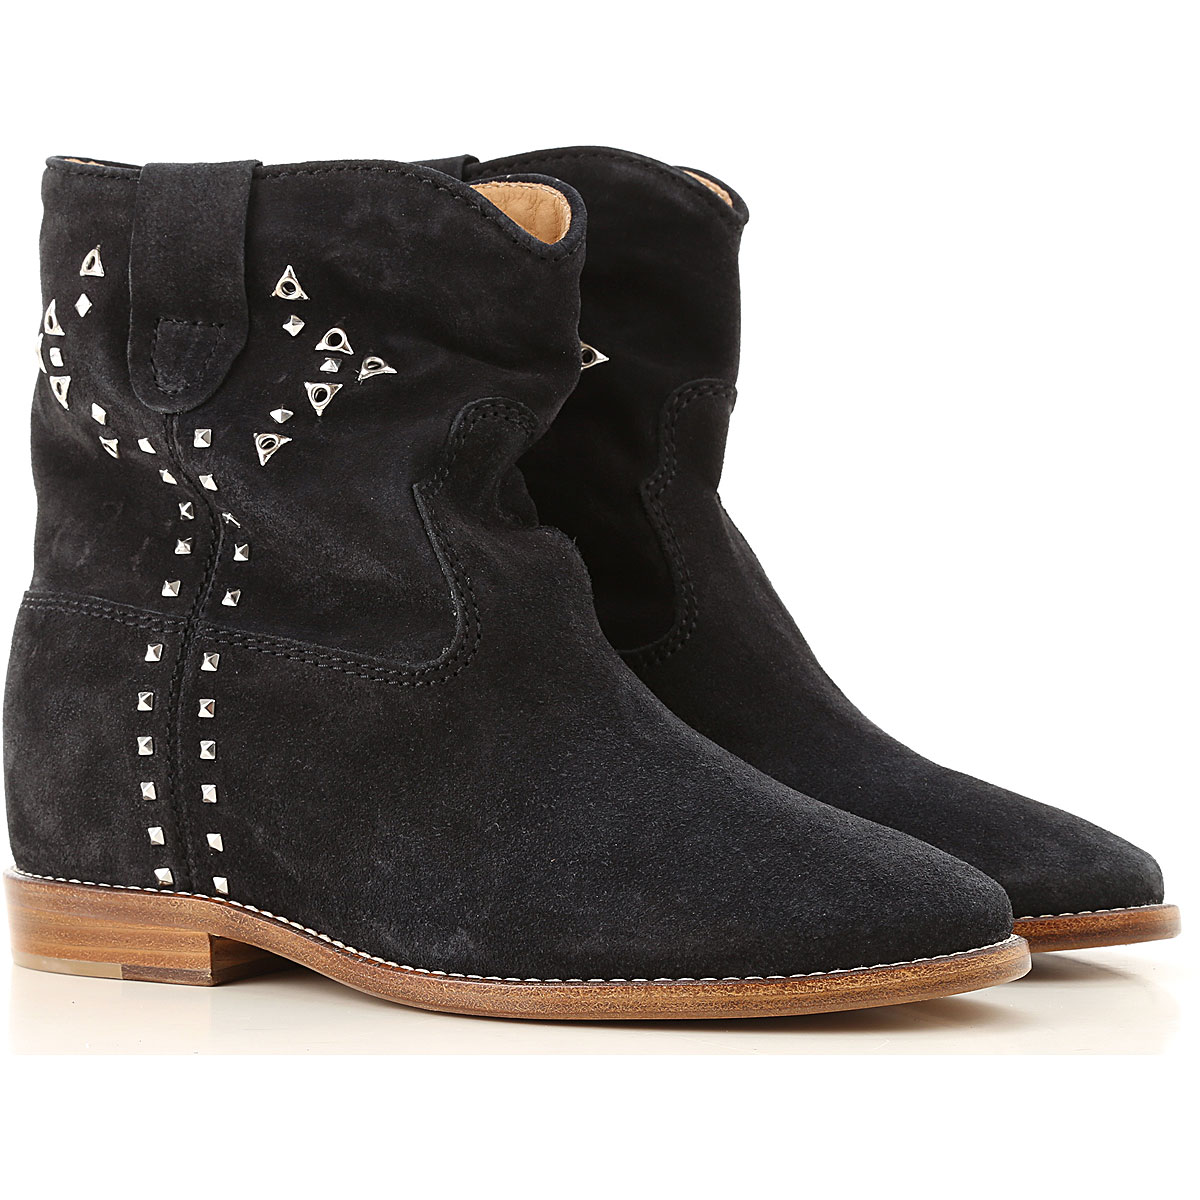 Isabel Marant Boots for Women, Booties On Sale, Faded Black, Suede leather, 2019, 10 6 8